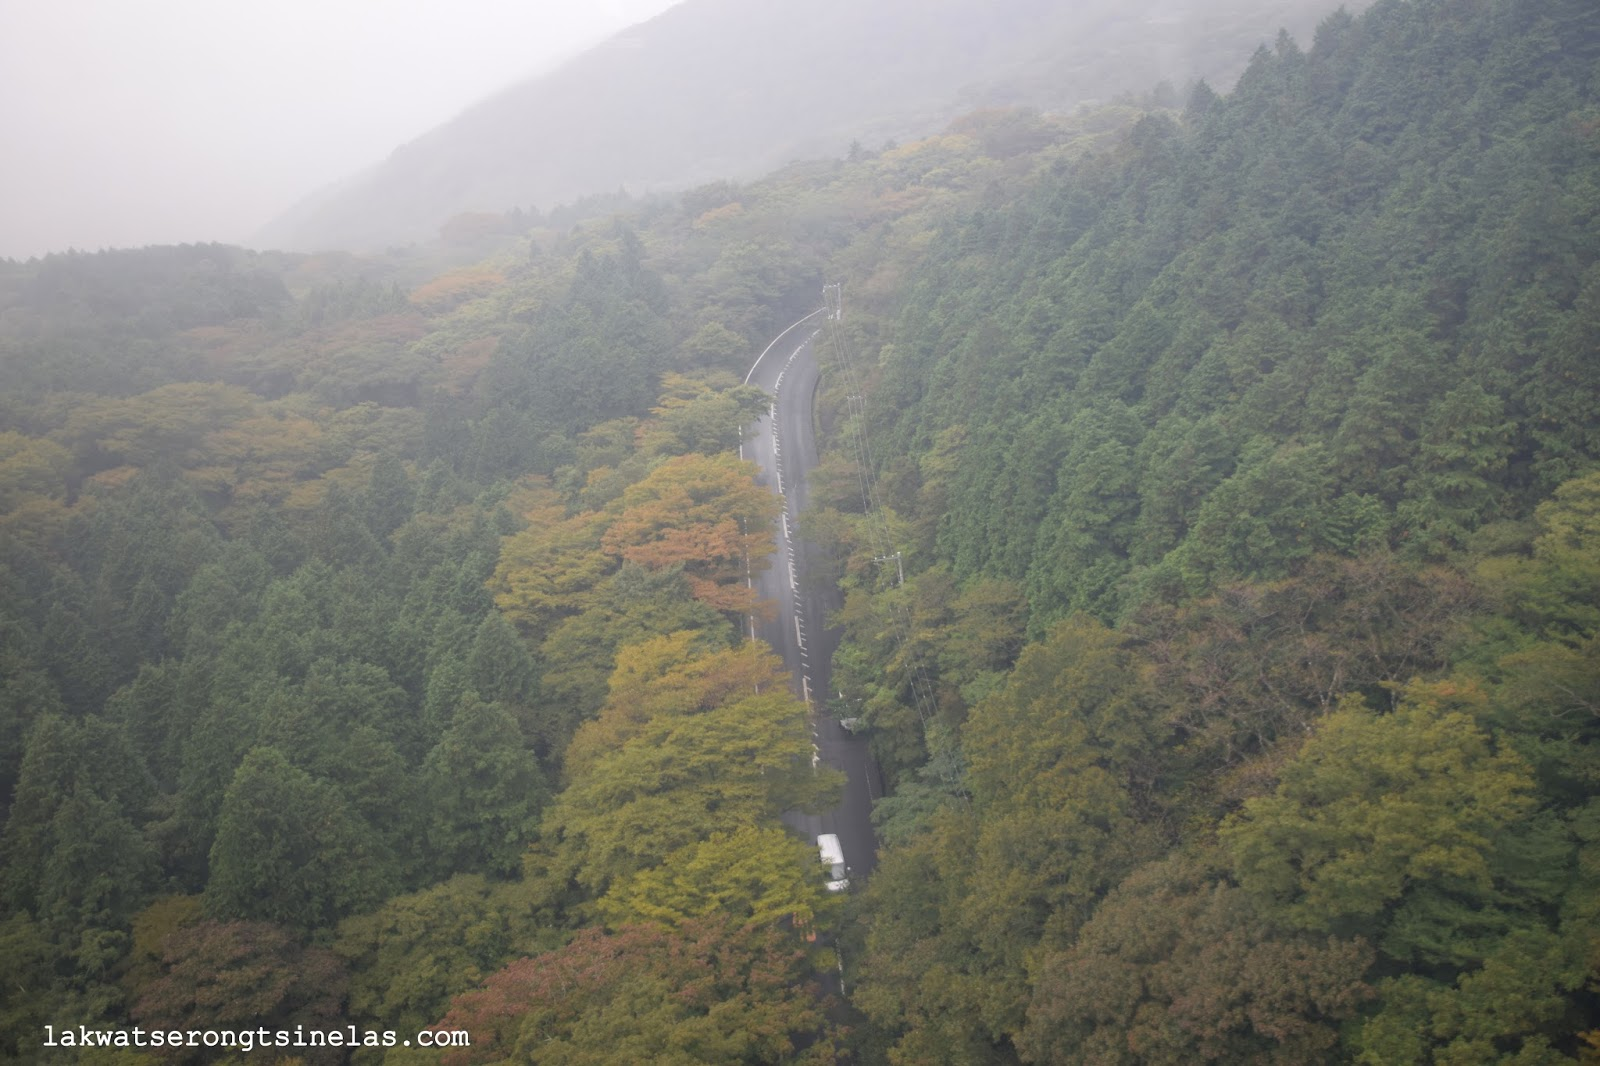 LAKE ASHI AND THE QUEST FOR MOUNT FUJI SIGHTINGS